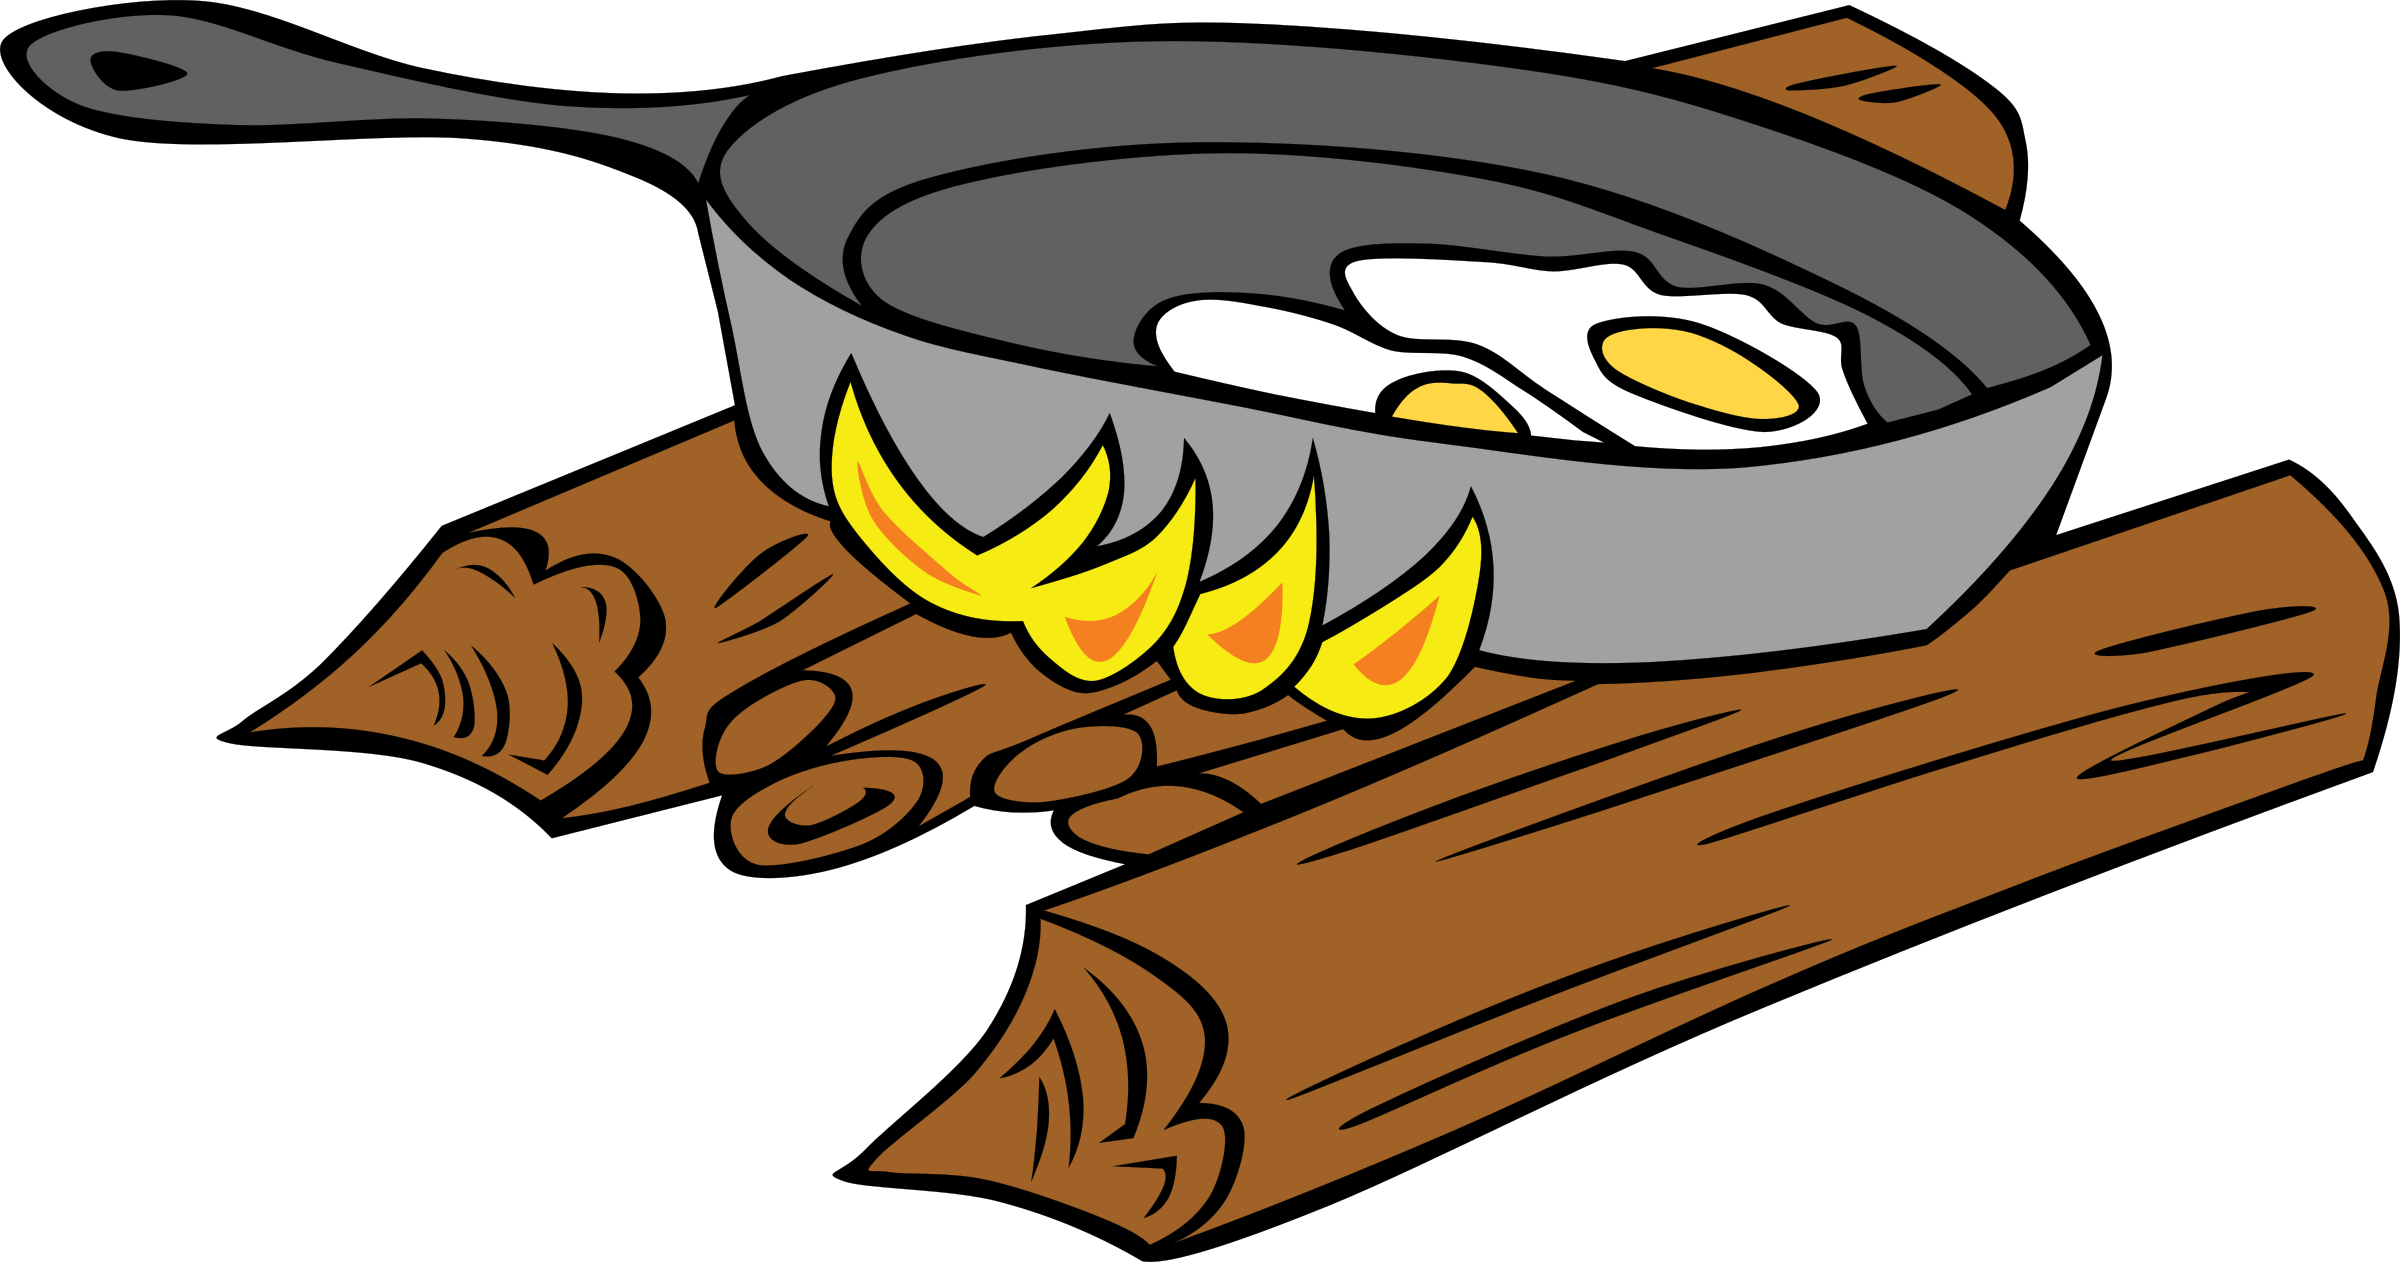 Cooking clipart covered food. Campfires and cranes big